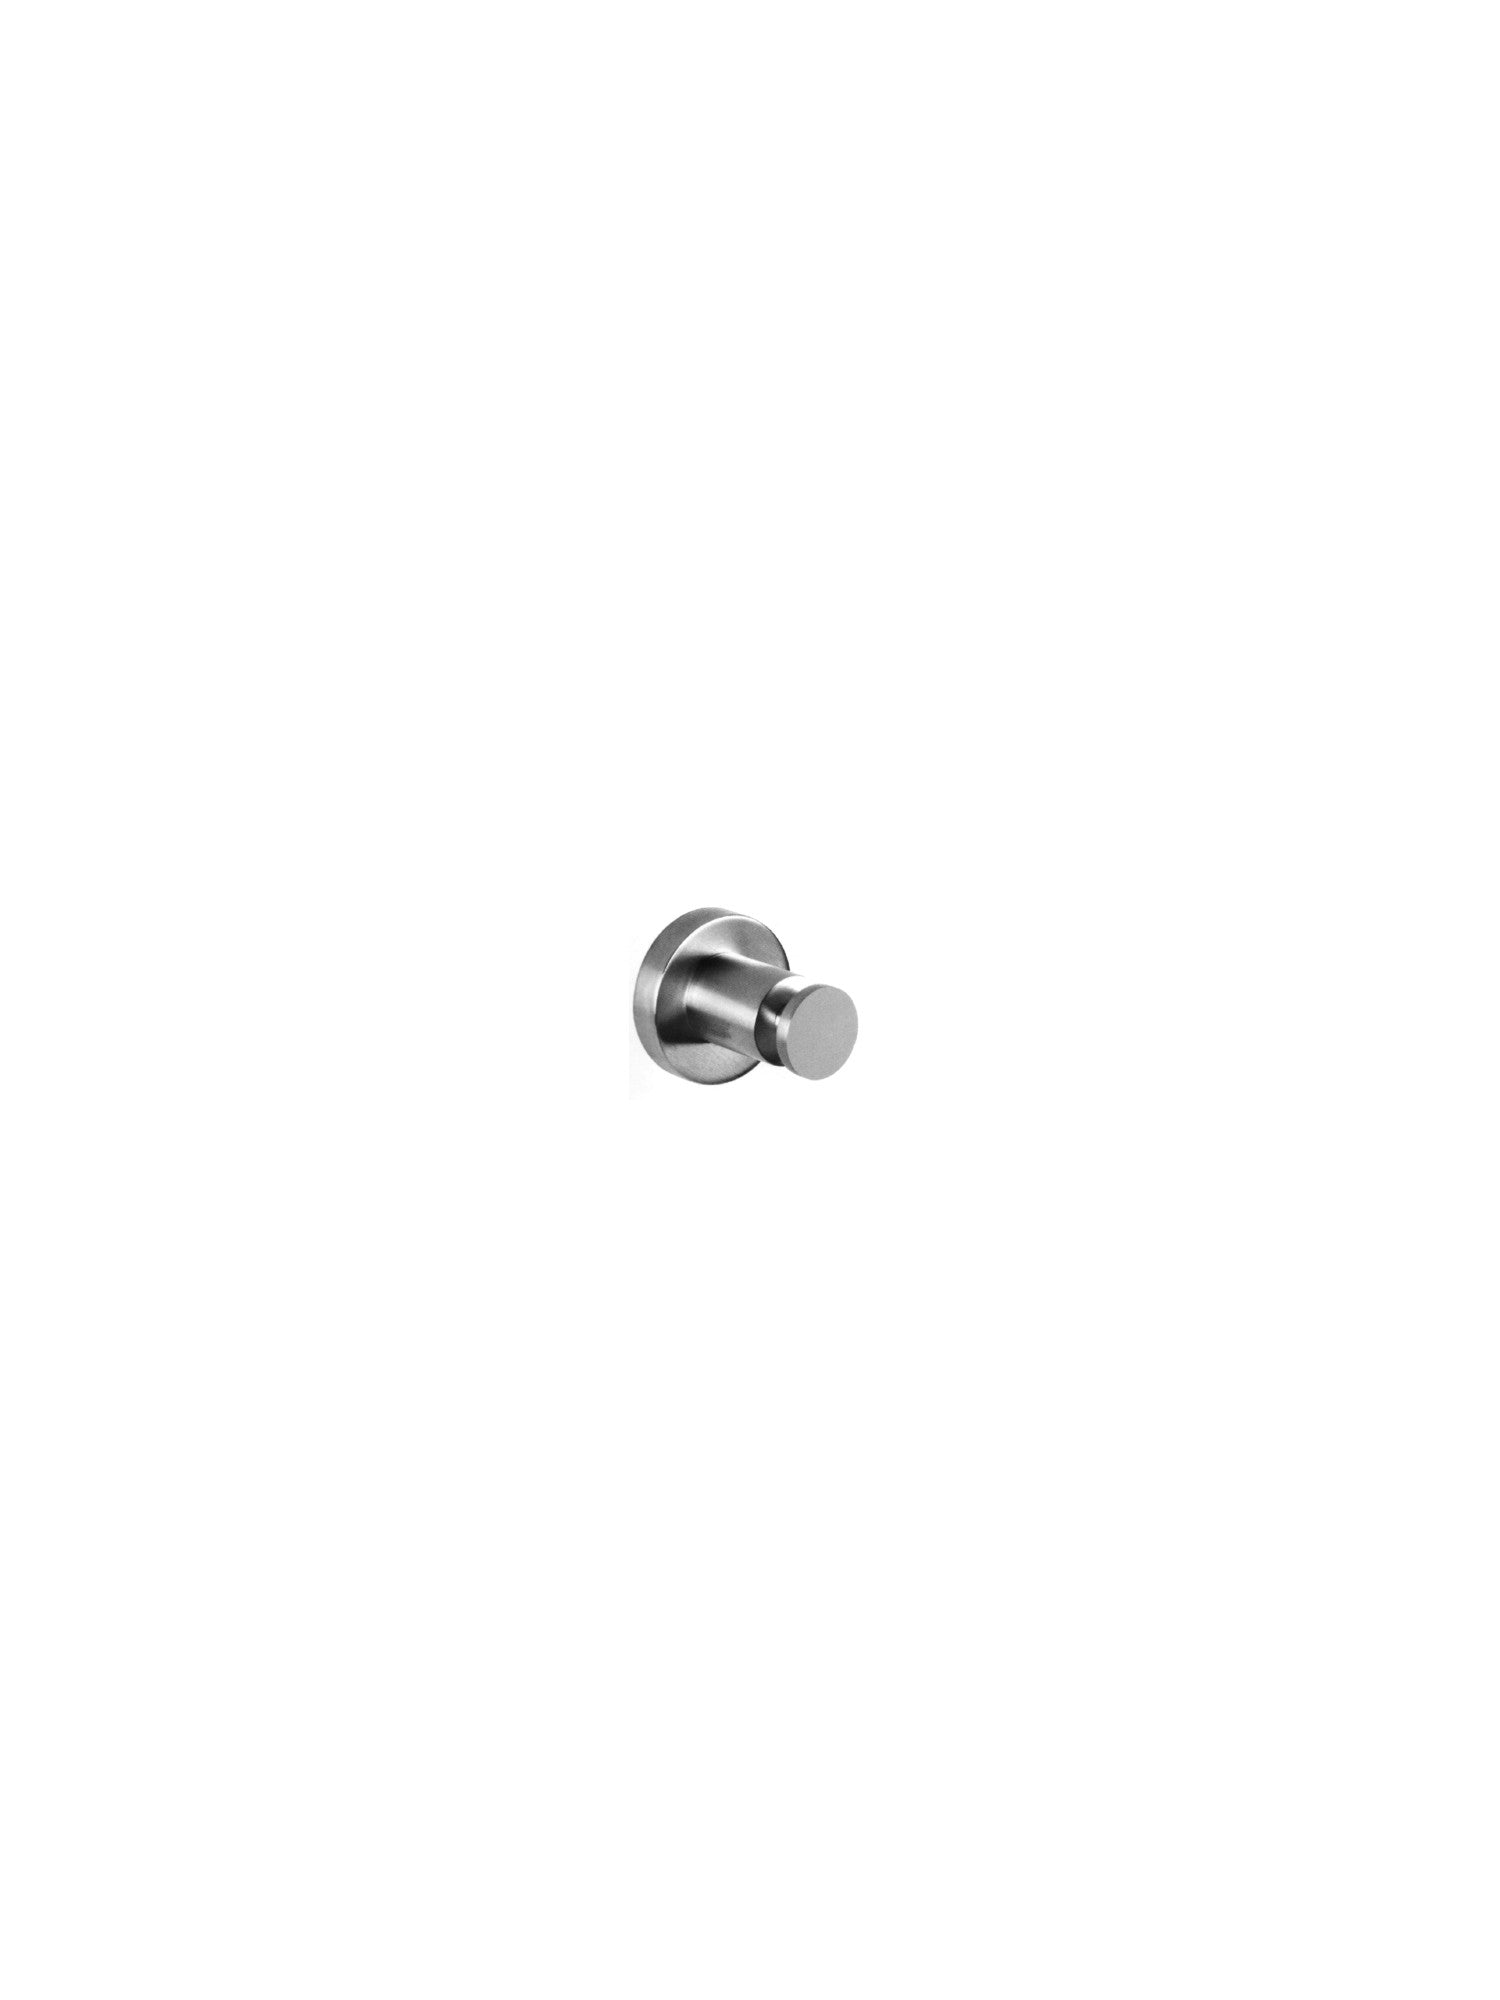 Klear Robe Hook Polished #JM-S31